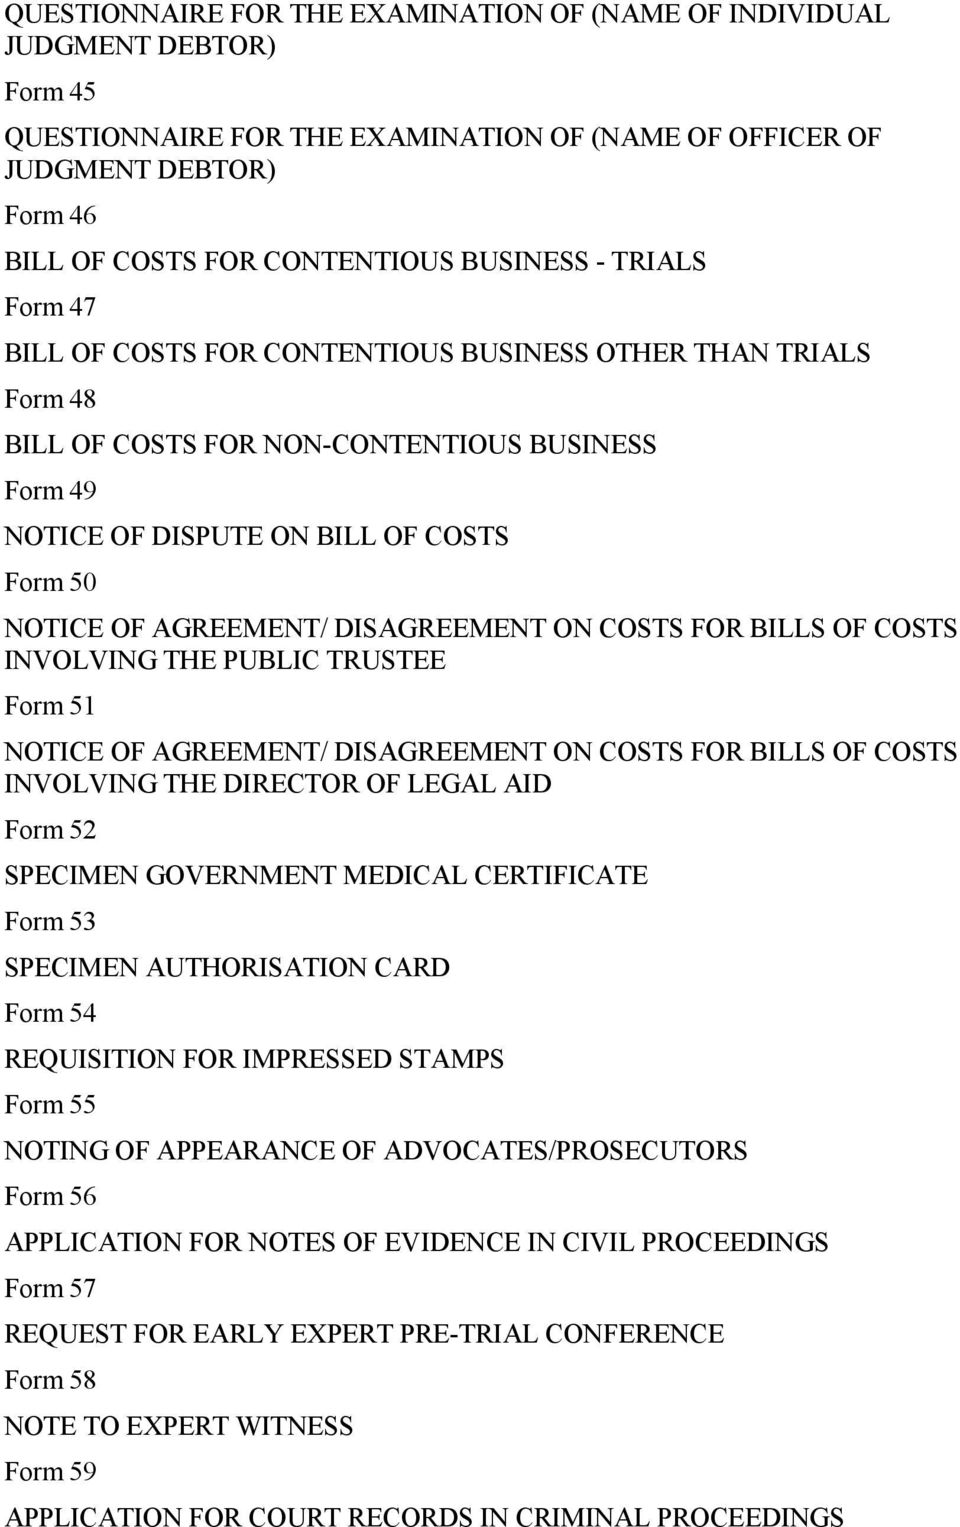 AGREEMENT/ DISAGREEMENT ON COSTS FOR BILLS OF COSTS INVOLVING THE PUBLIC TRUSTEE Form 51 NOTICE OF AGREEMENT/ DISAGREEMENT ON COSTS FOR BILLS OF COSTS INVOLVING THE DIRECTOR OF LEGAL AID Form 52